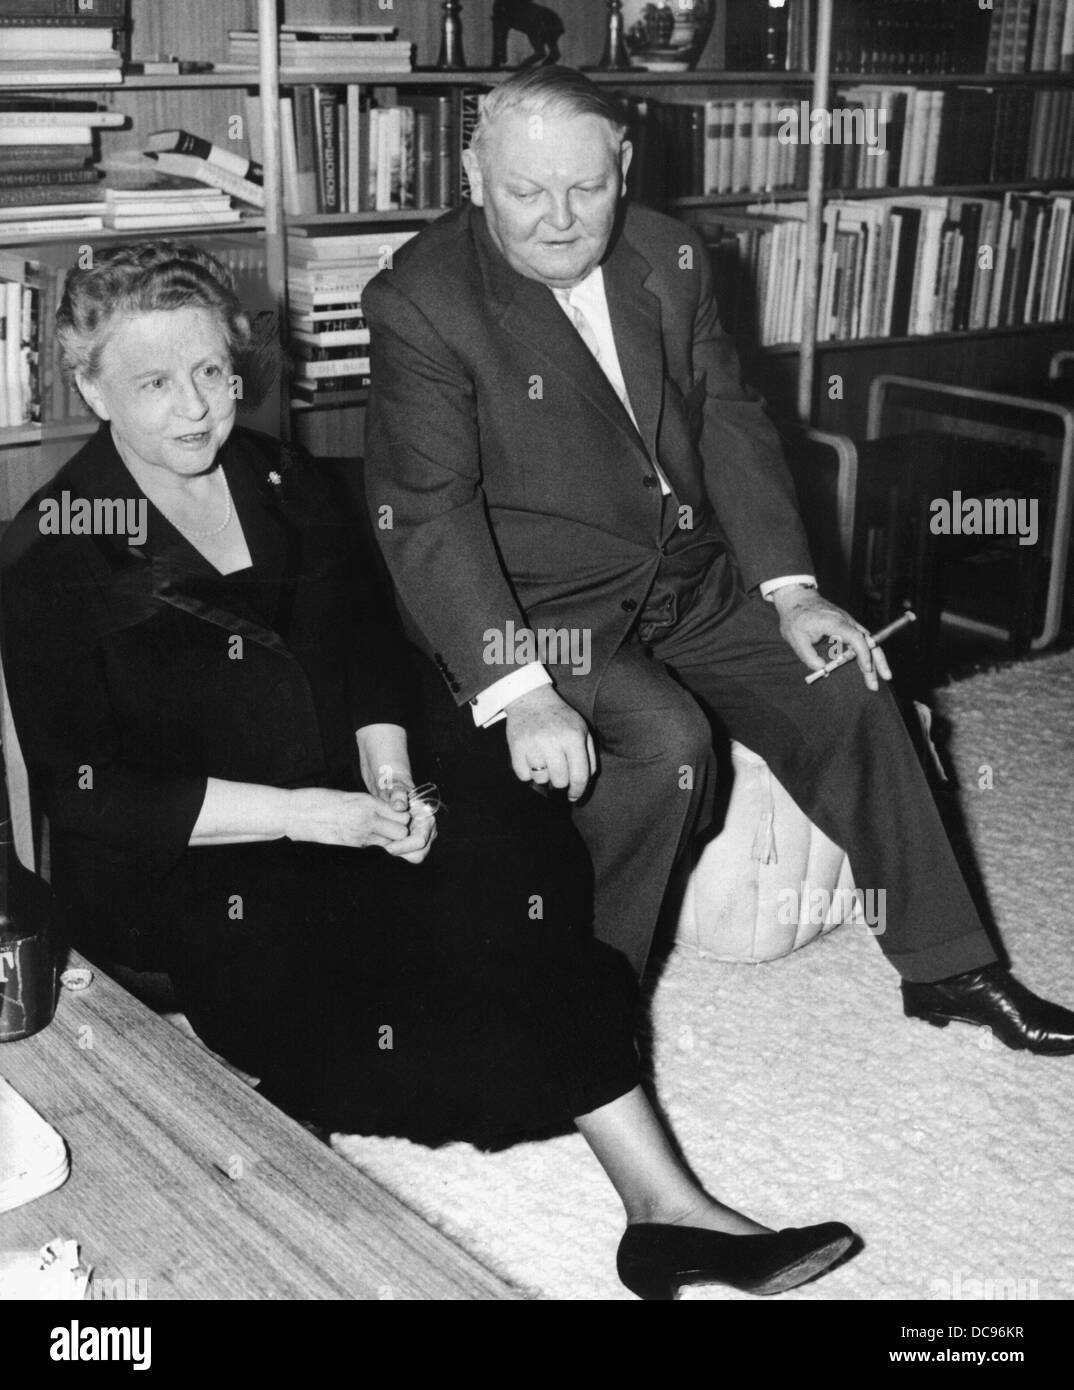 Federal minister of economy Ludwig Erhard and his wife Luise in their house at Tegernsee on an archive picture from the 1960s. Stock Photo